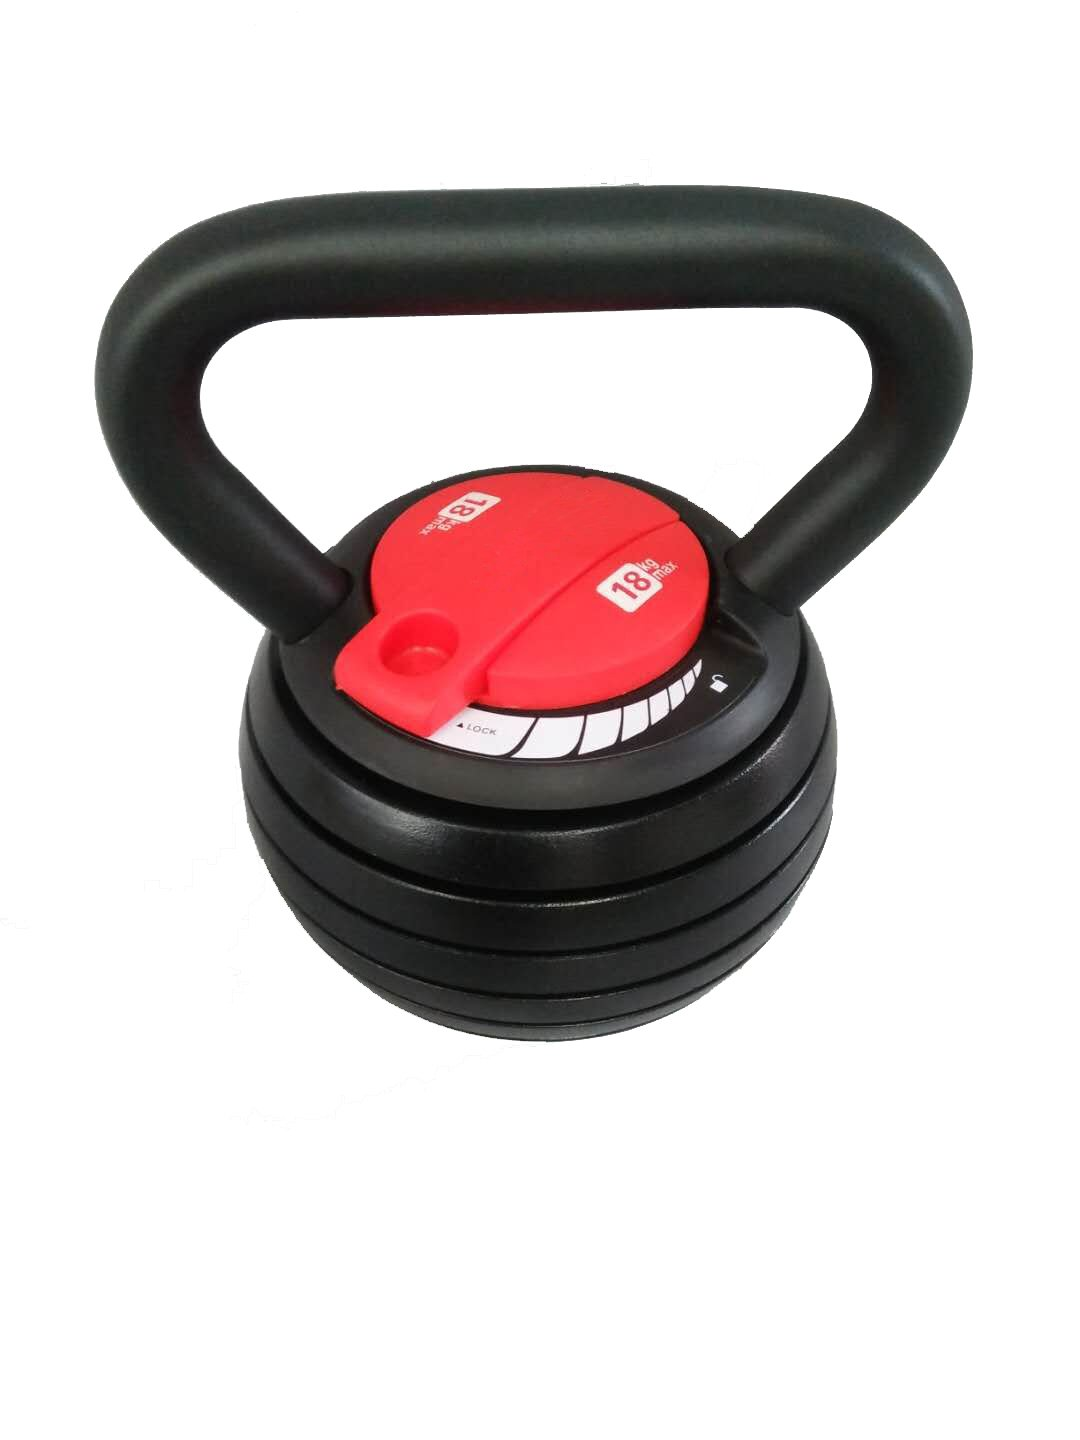 FitnessTech Adjustable Pesa Rusa